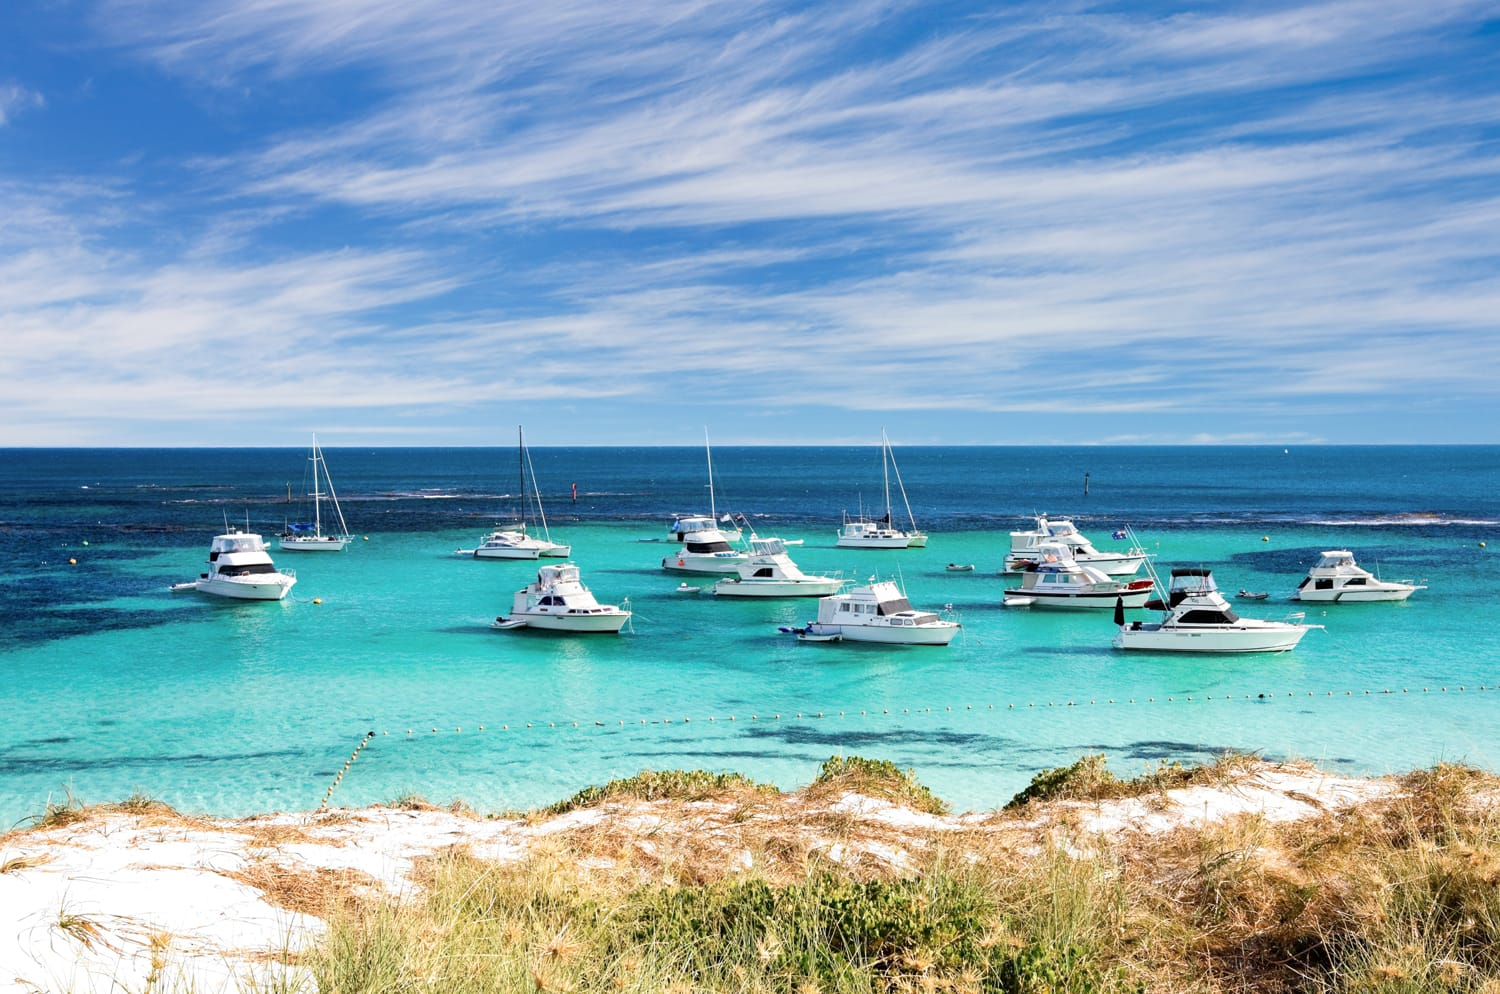 Scecnic view over the shore of Rottnest island in Australia